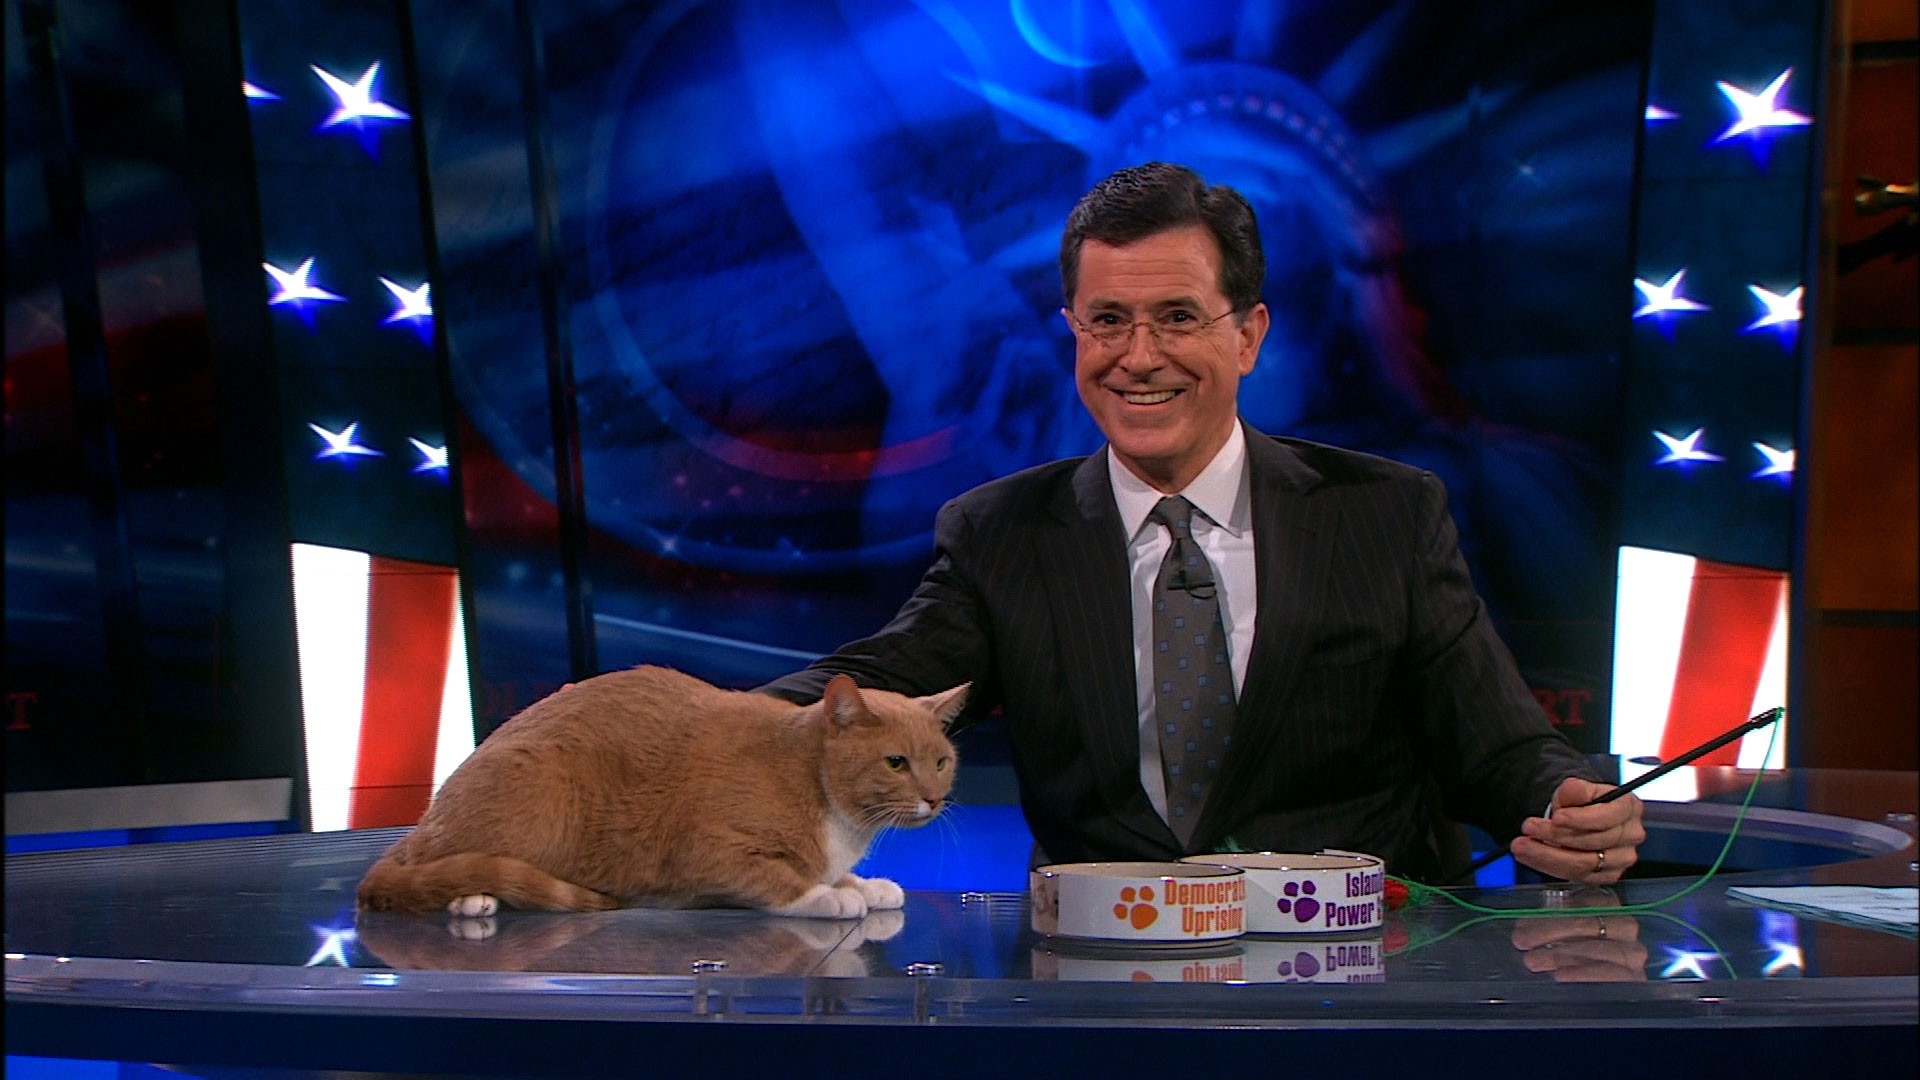 Stephen Colbert Wallpaper 11   1920 X 1080 stmednet 1920x1080